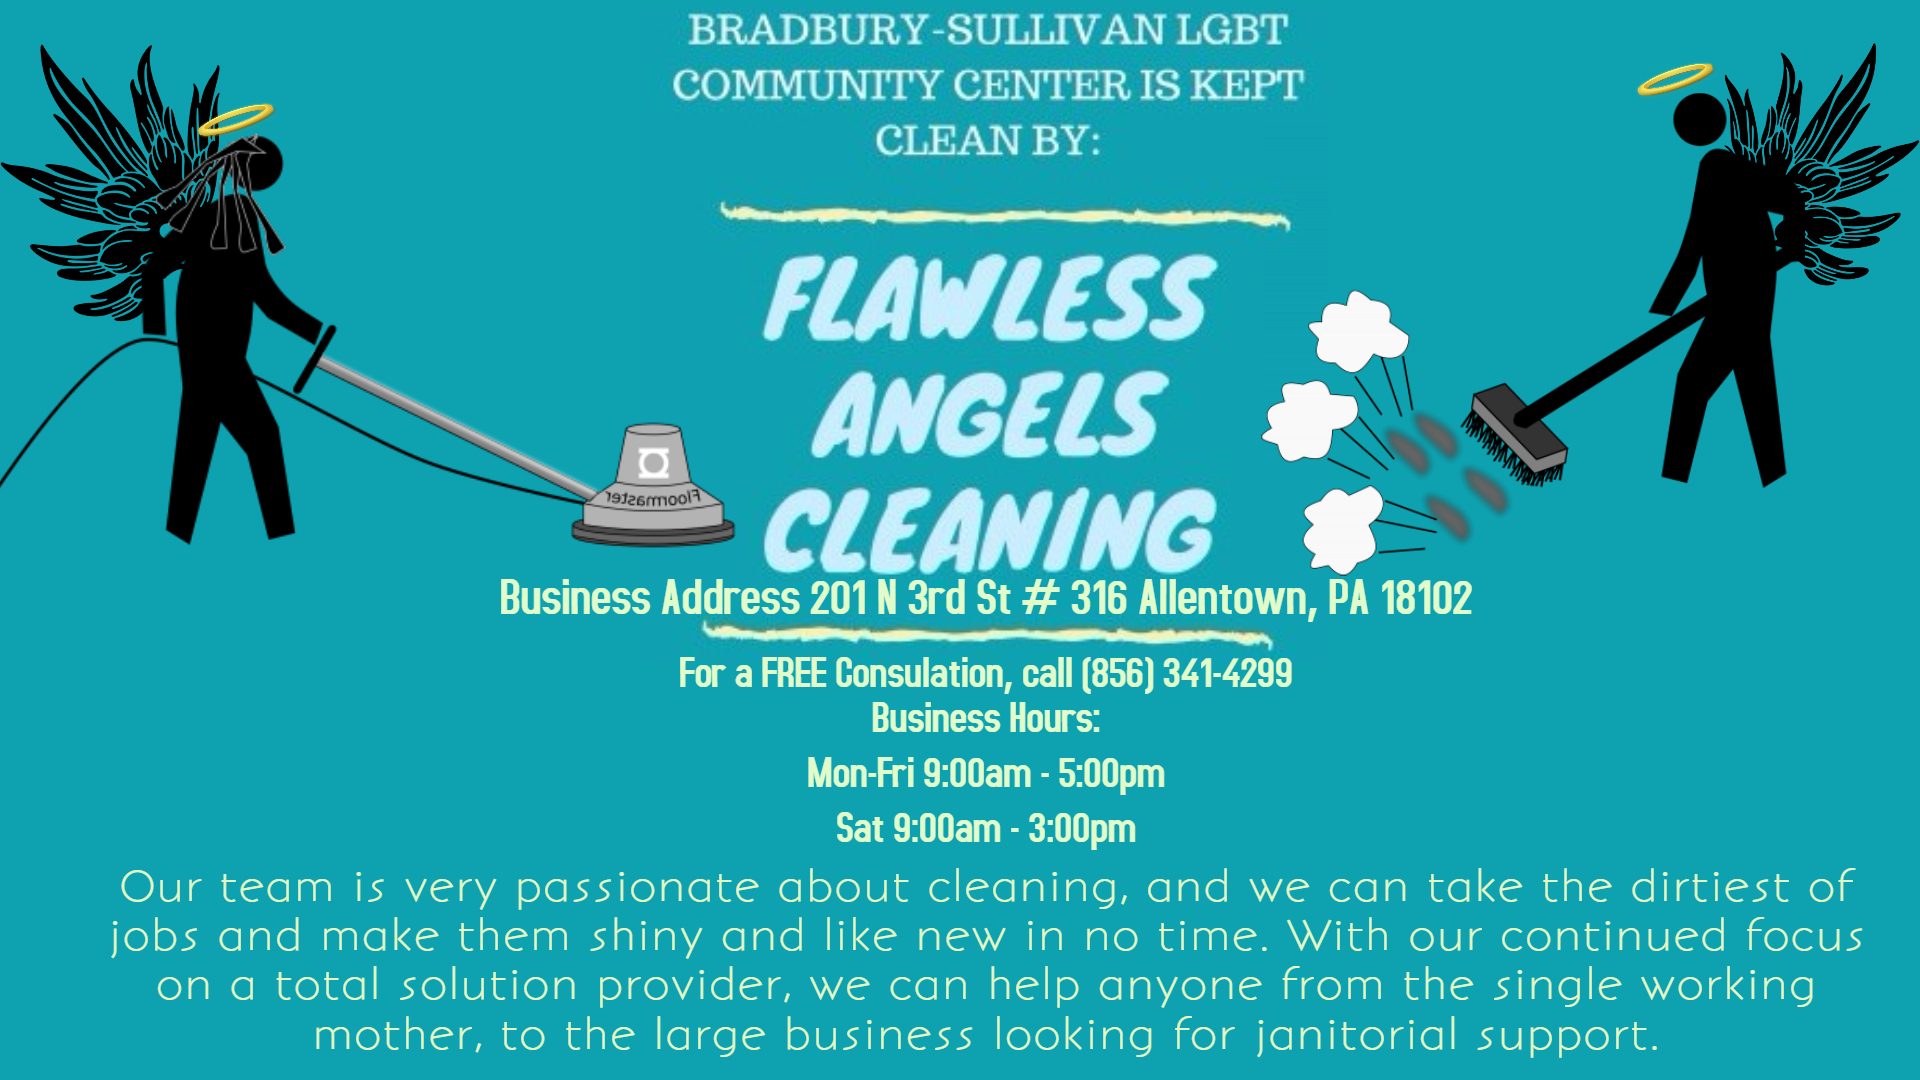 Flawless_Angels_Cleaning_2.jpg